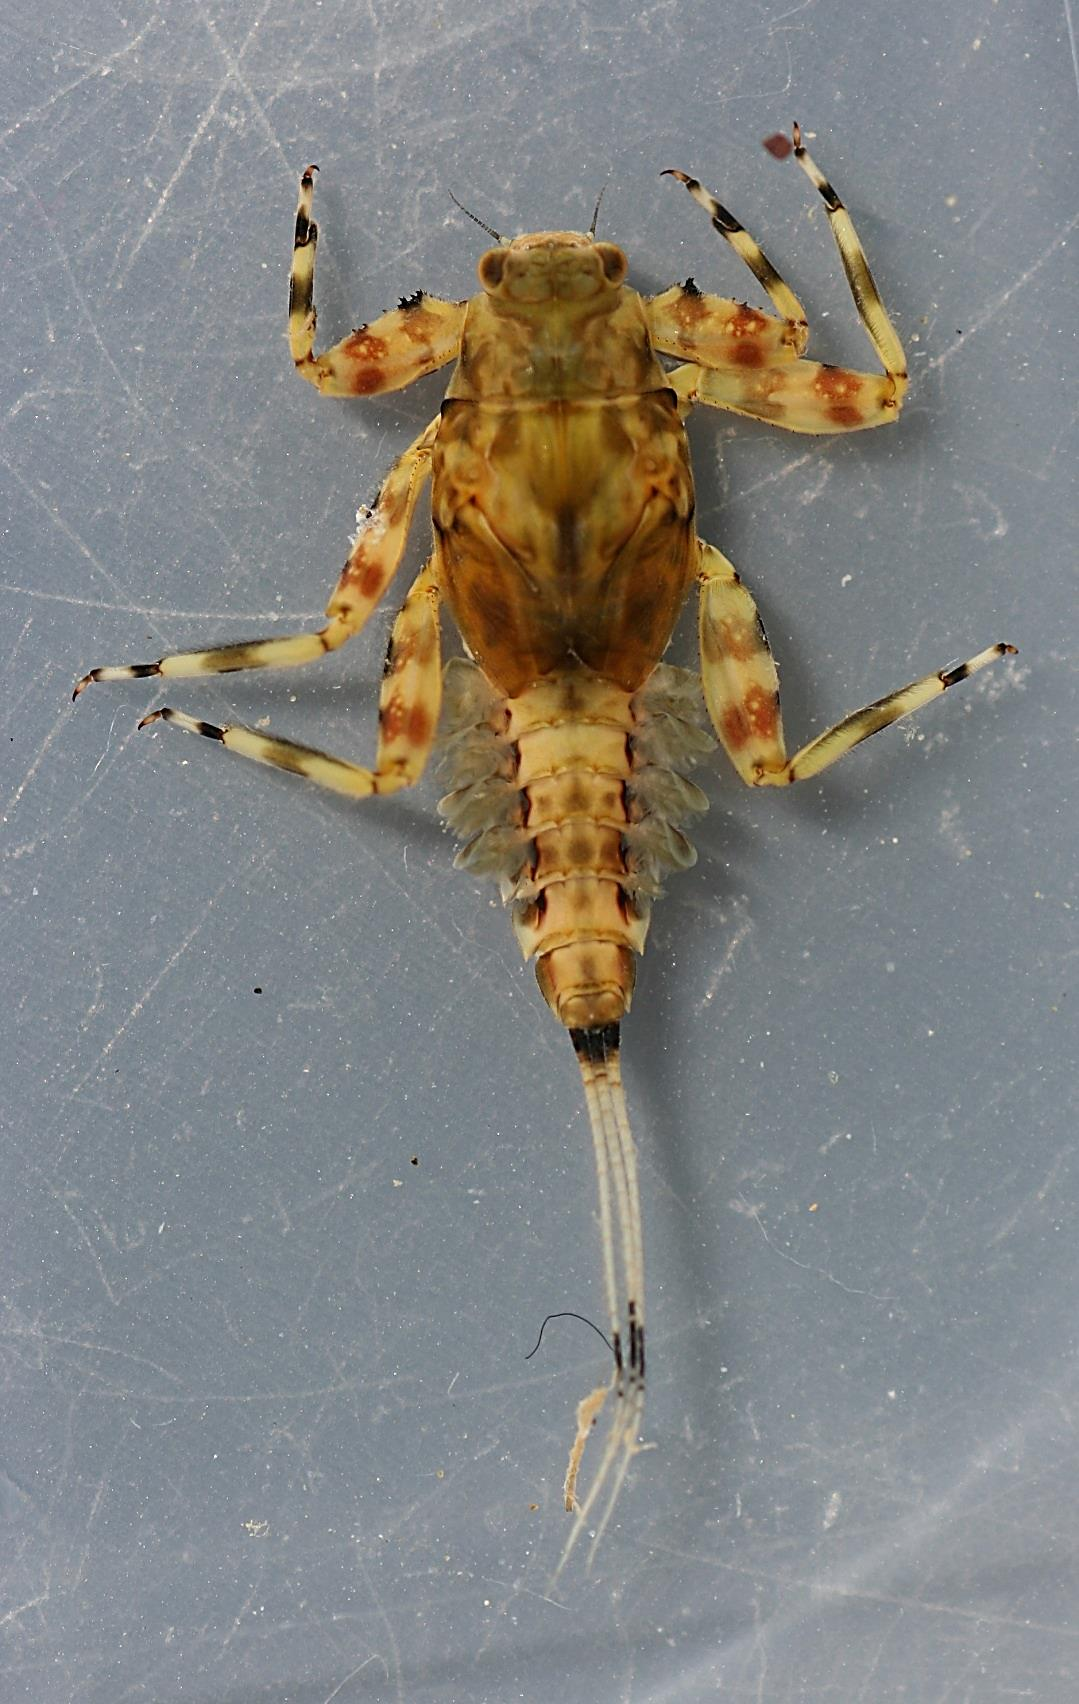 In alcohol, collected April 3, 2013. Dorsal view, specimen 1.